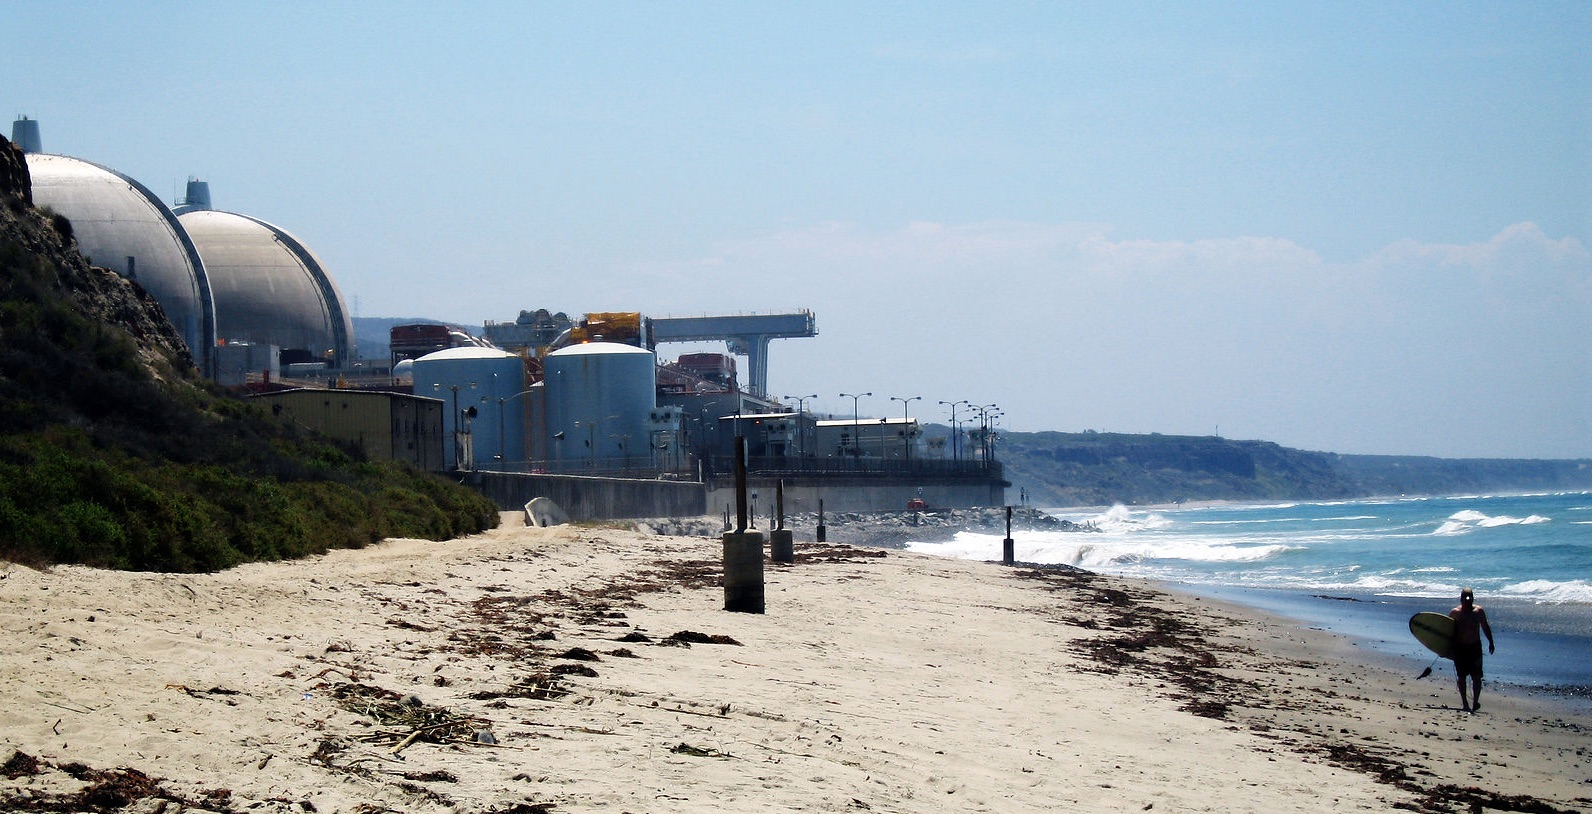 Weekly Round Up – Poseidon Updates, Peace Paddle, San Onofre Nuclear Plant & More!